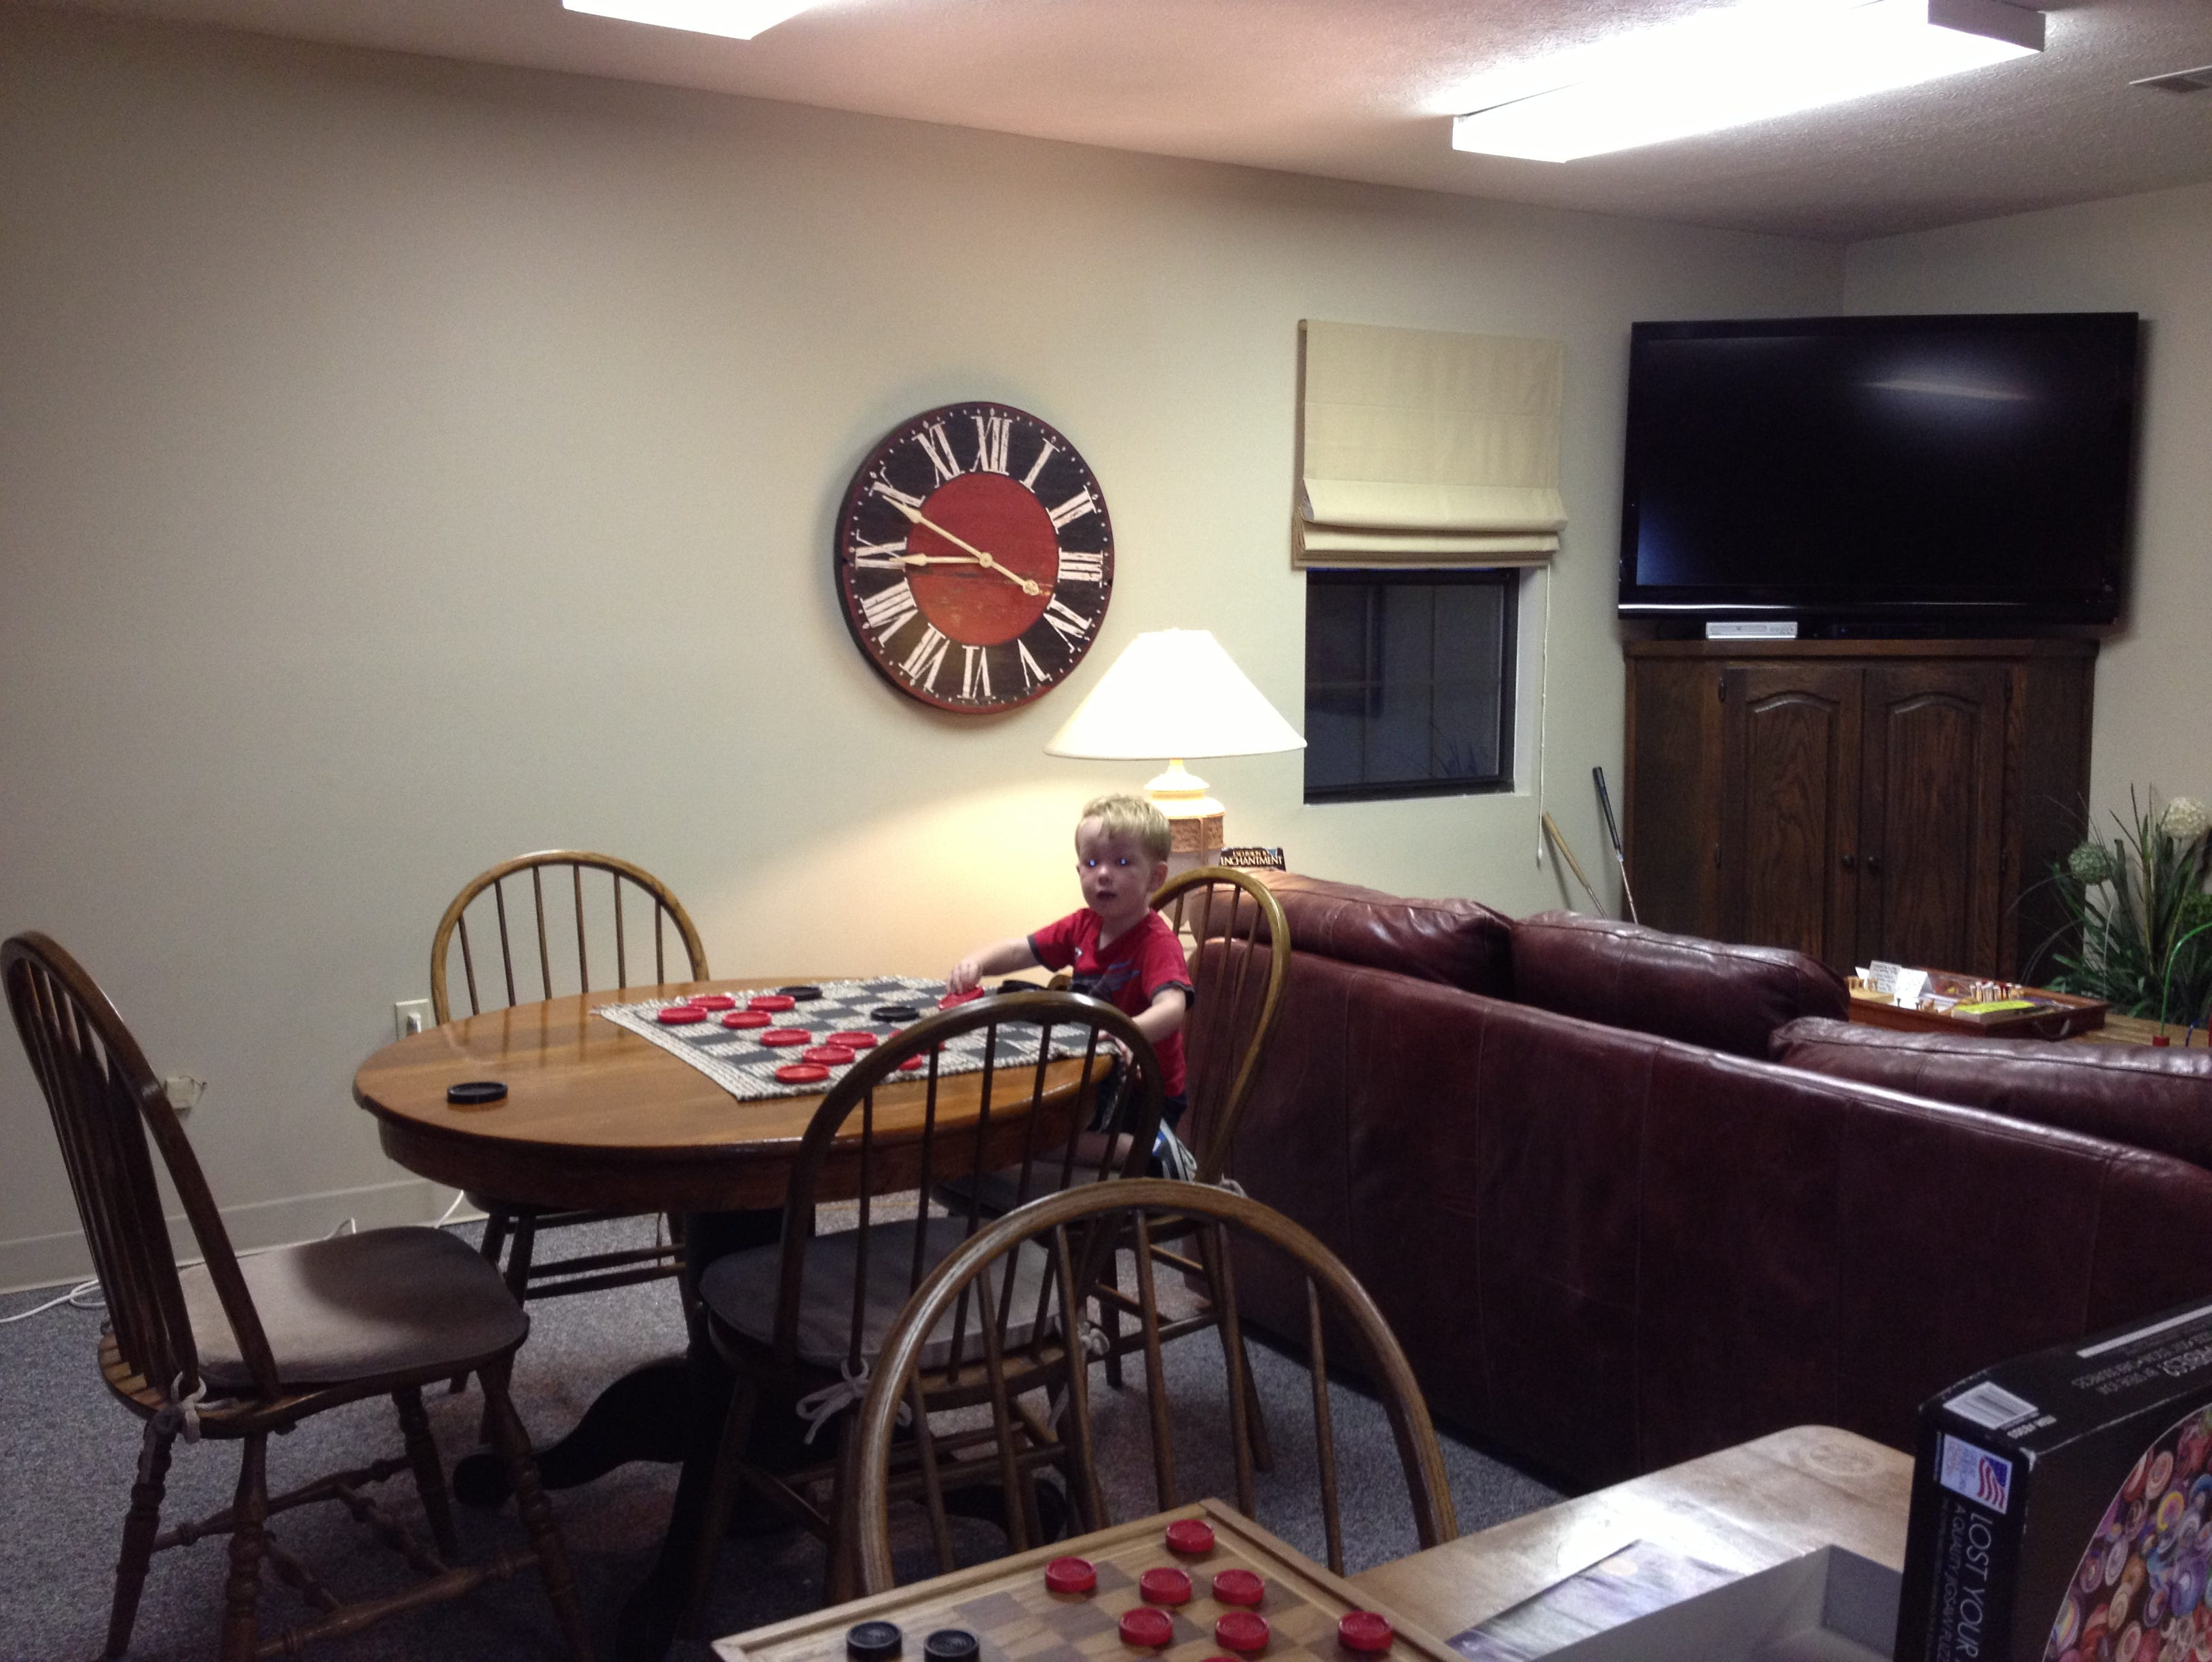 Even young guests can find diversions in the community building. Caleb Schneider entertains himself in the game room with checkers.